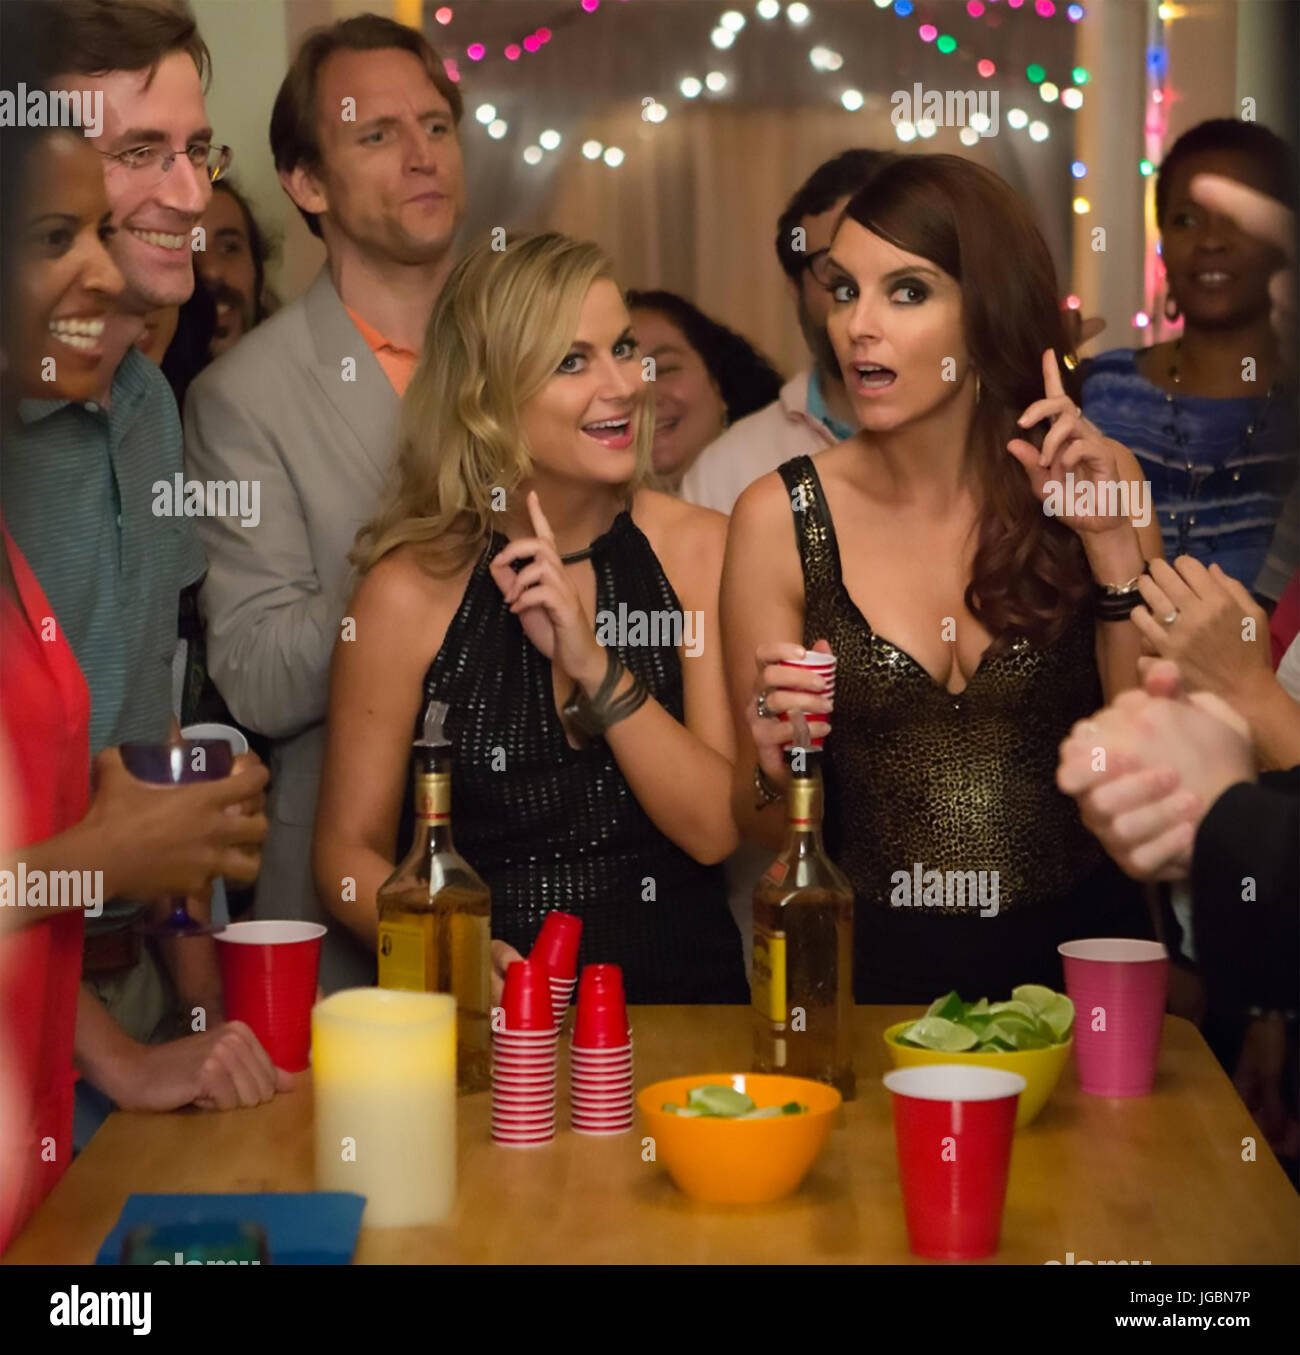 SISTERS 2015 Little Stranger film with Amy Poehler at left and Tina Fey - Stock Image